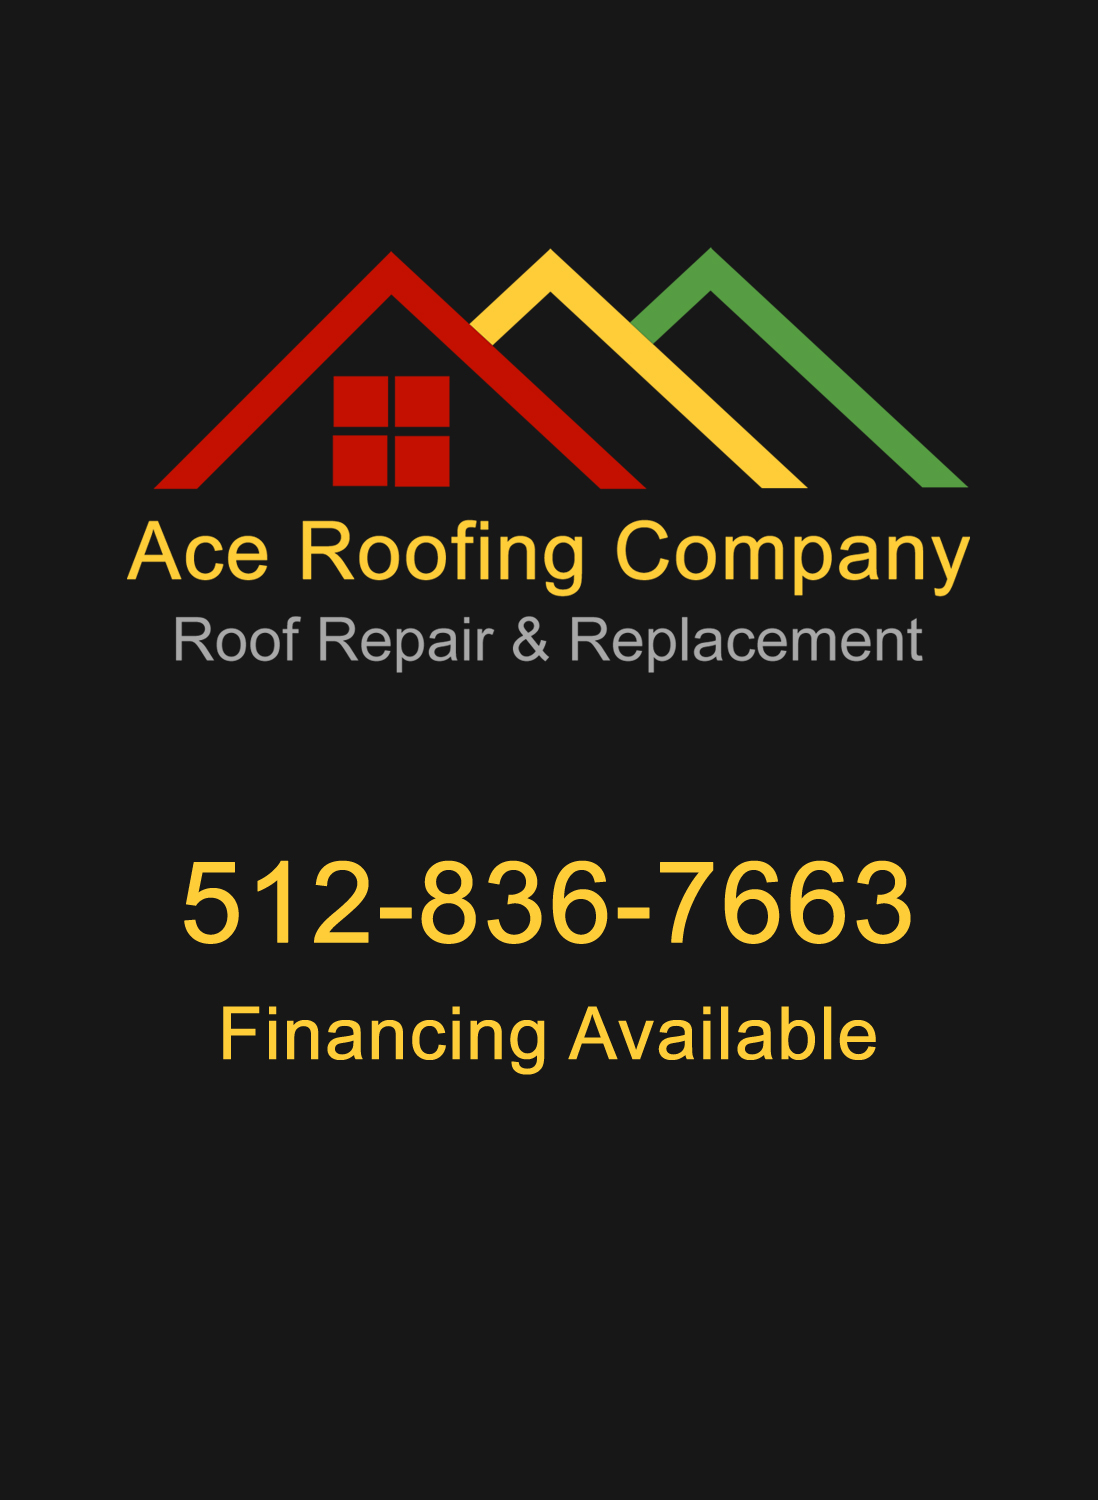 Ace Roofing Company Announces Specials On Hail Damage Repair